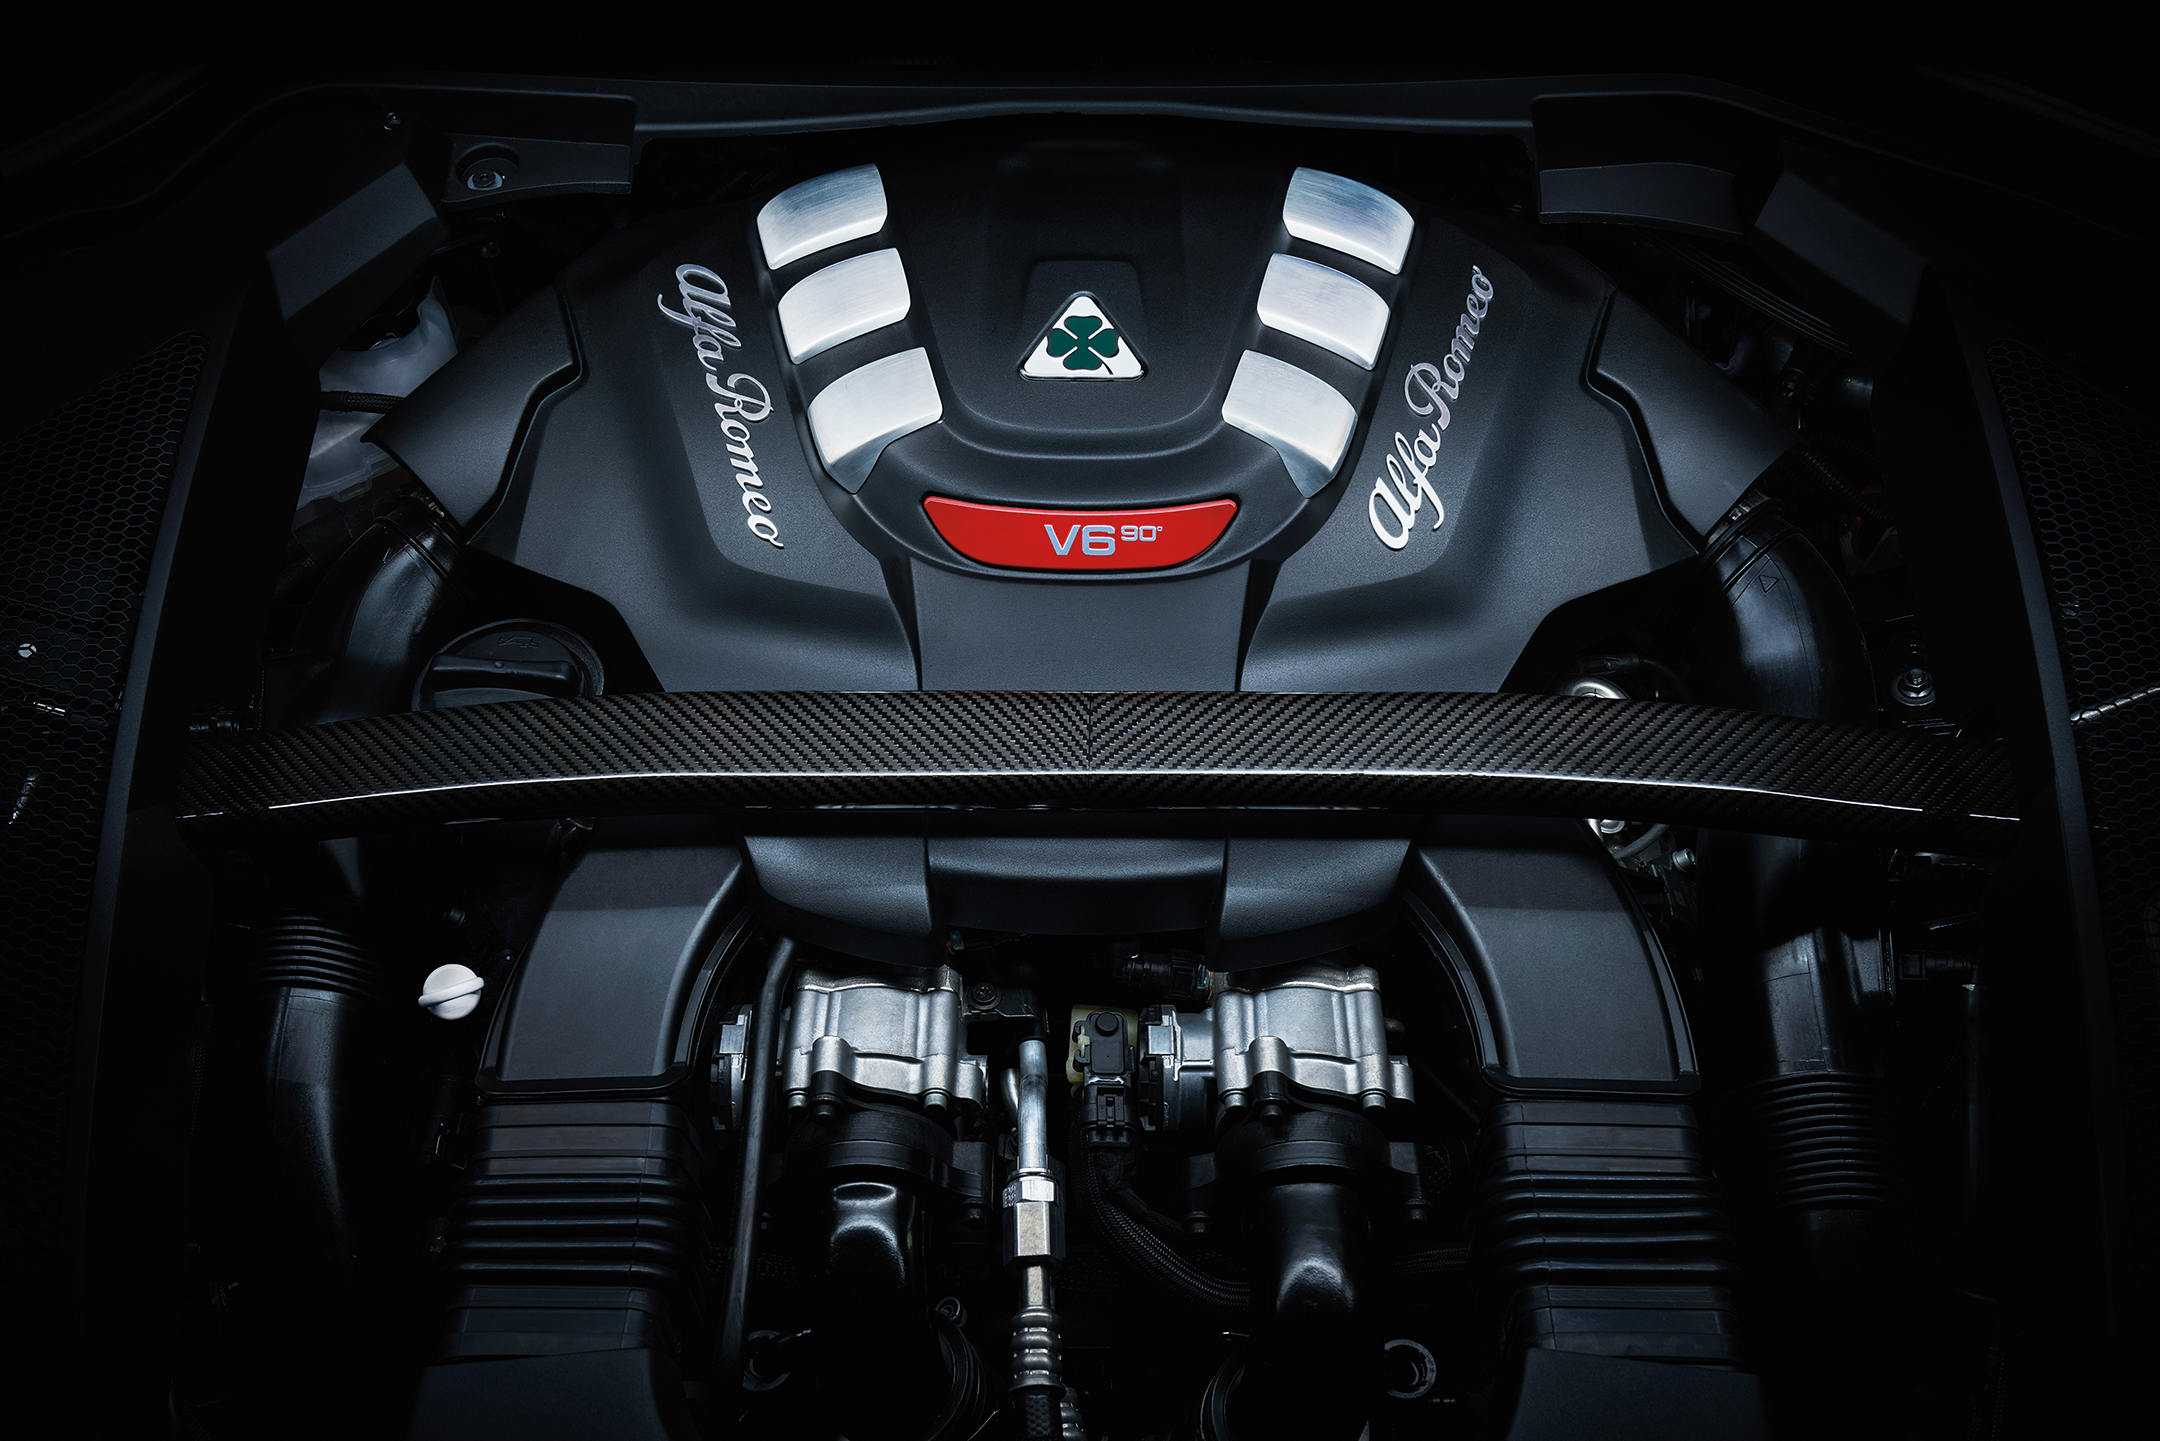 Alfa Romeo Stelvio - 2016 - under the hood - V6 - engine / moteur